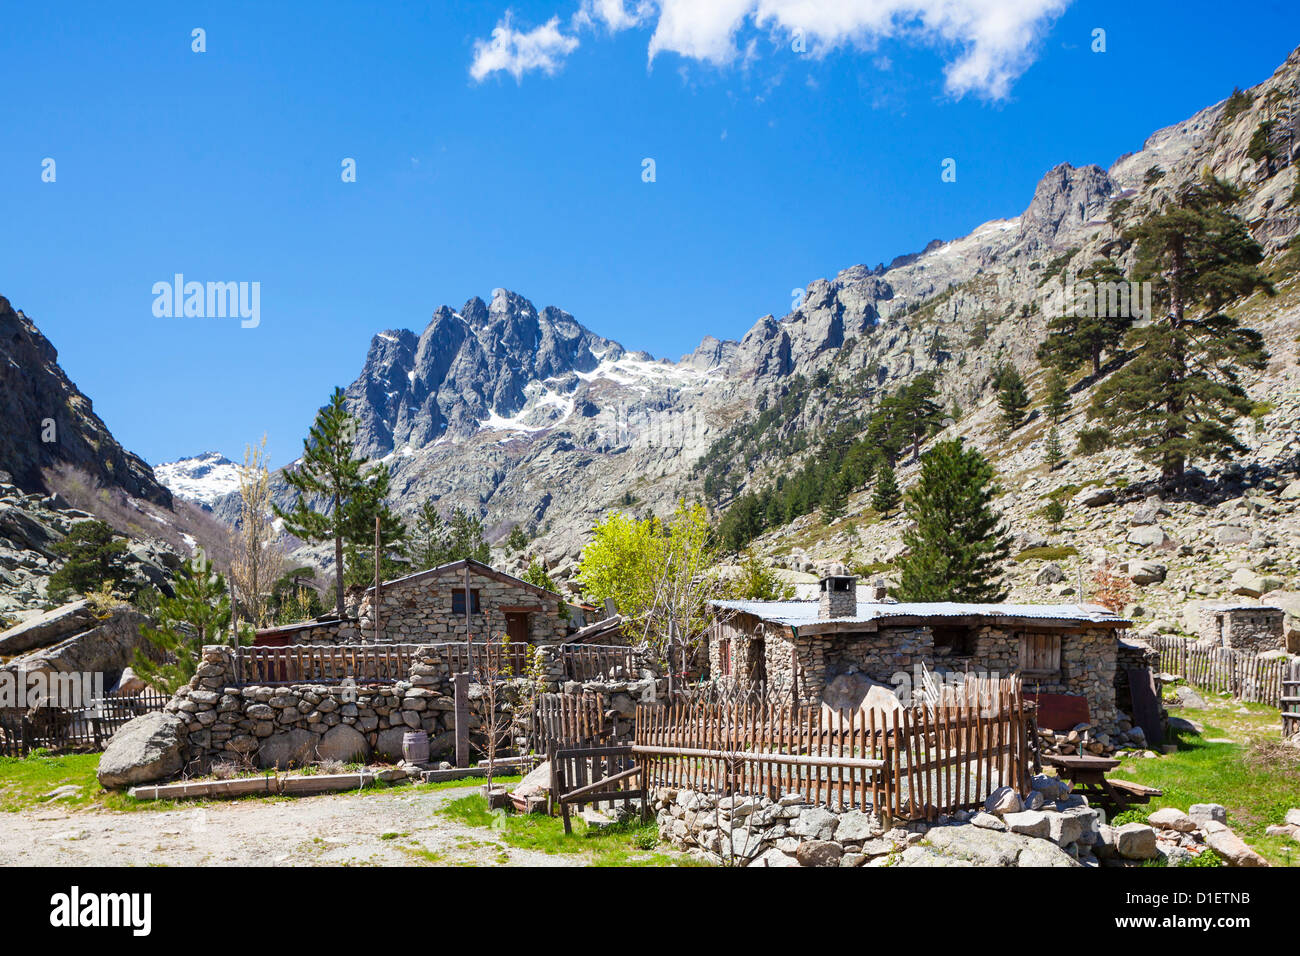 Shepherd's hut in the Restonica Valley, Corsica, France - Stock Image